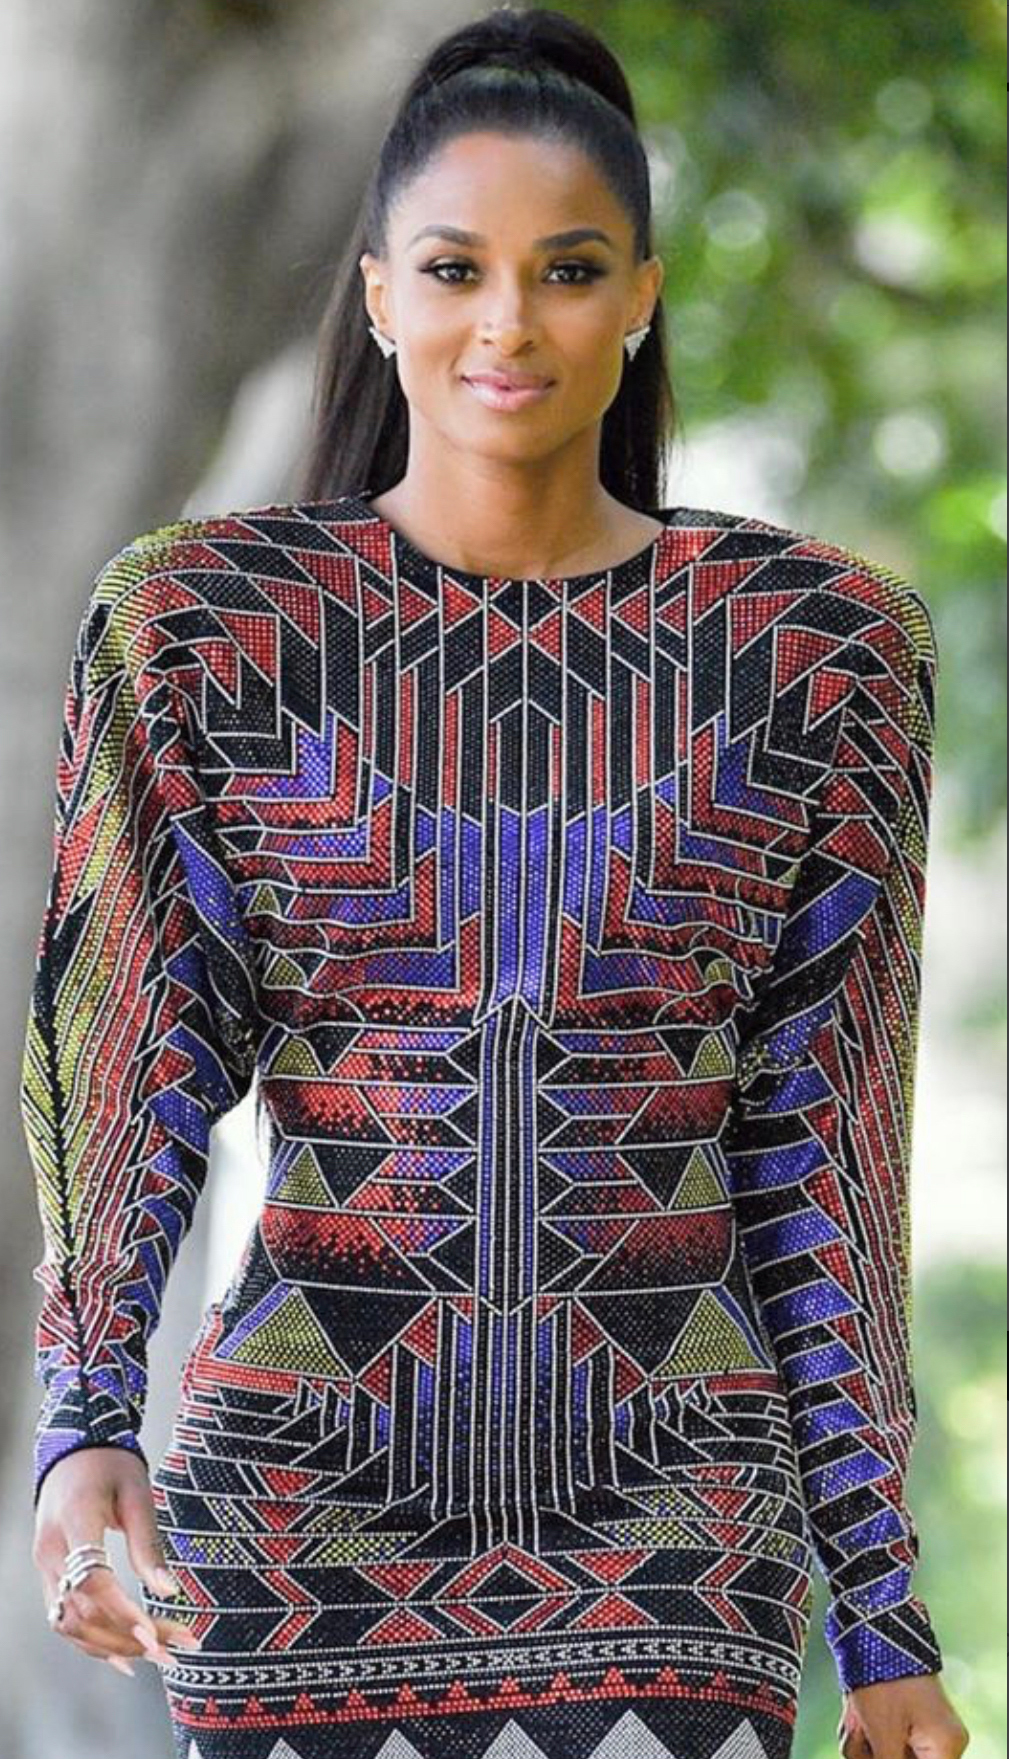 Ciara wearing Marli's Fifi Multi-Strand ring to her new show America's Most Musical Family